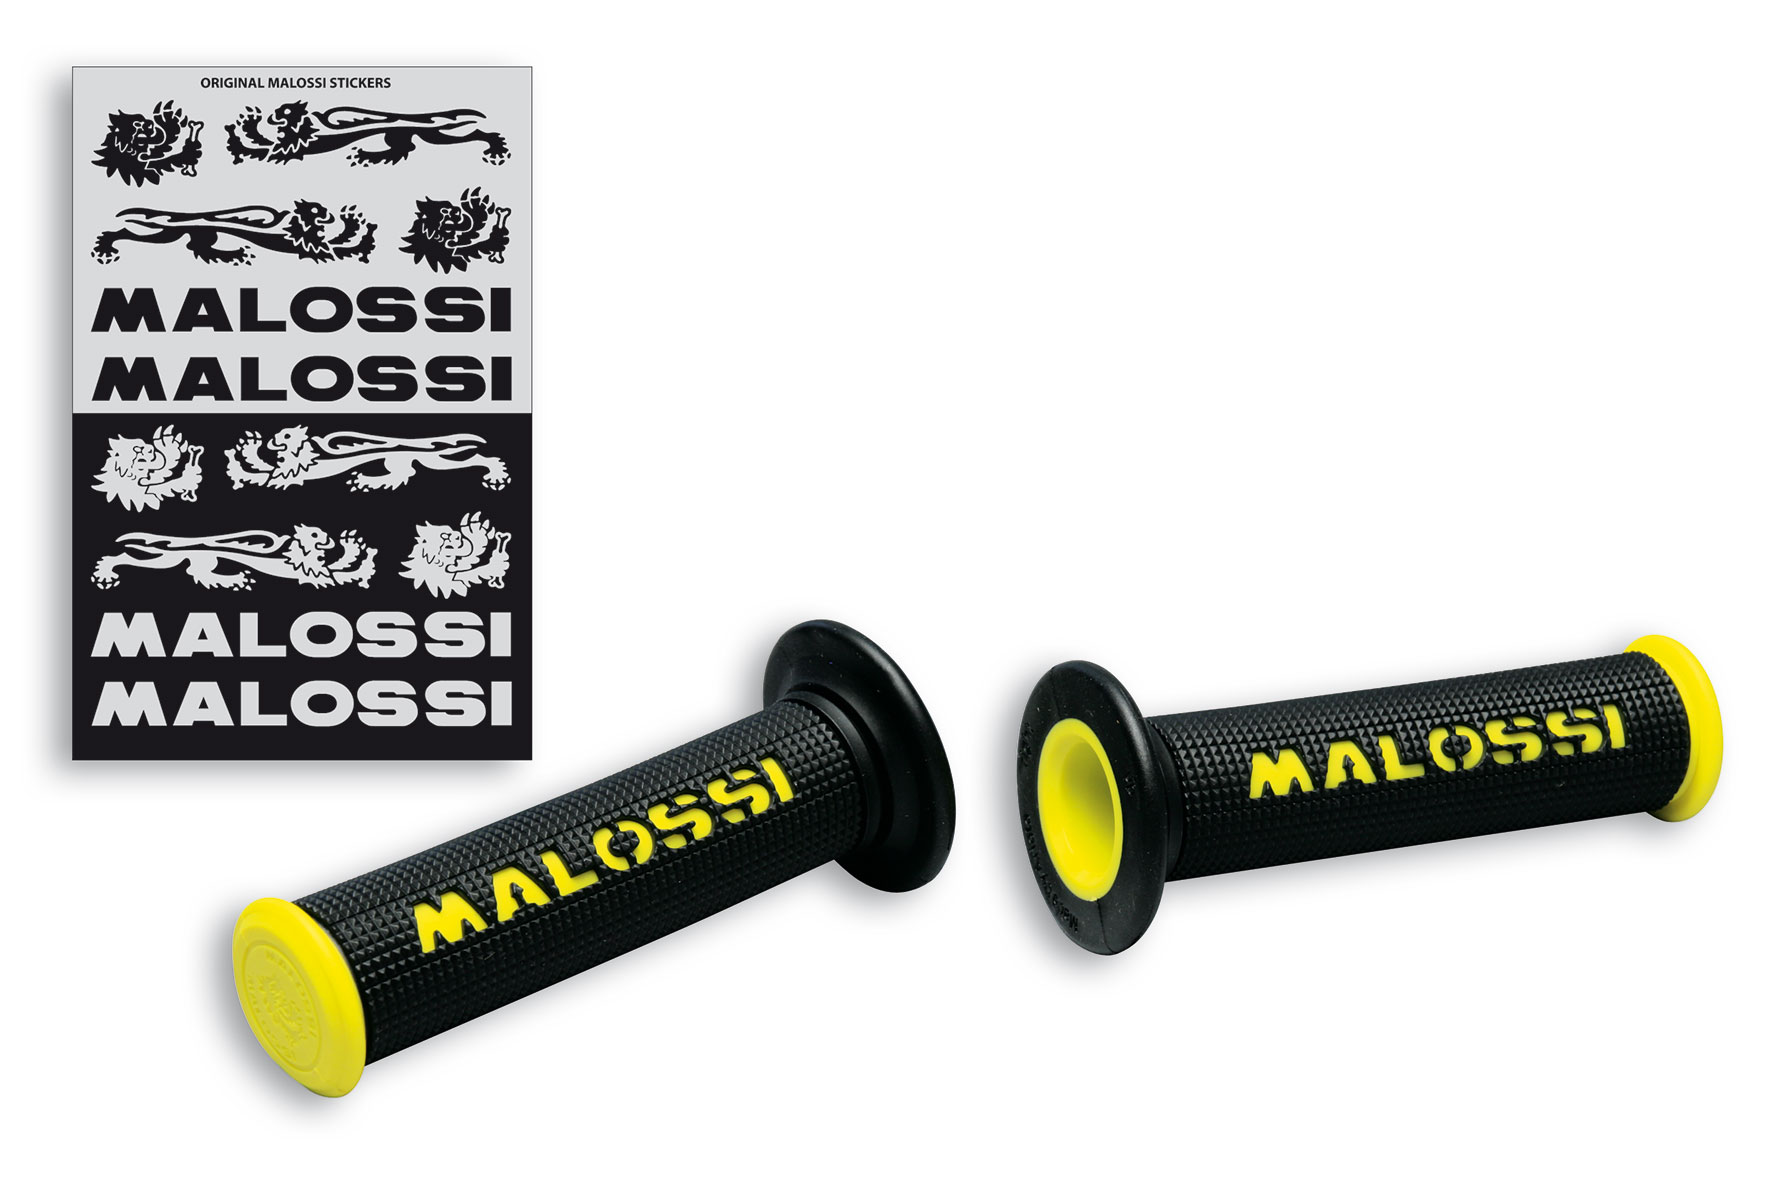 2 BLACK GRIPS with YELLOW Malossi logo (mod. with side fastening)